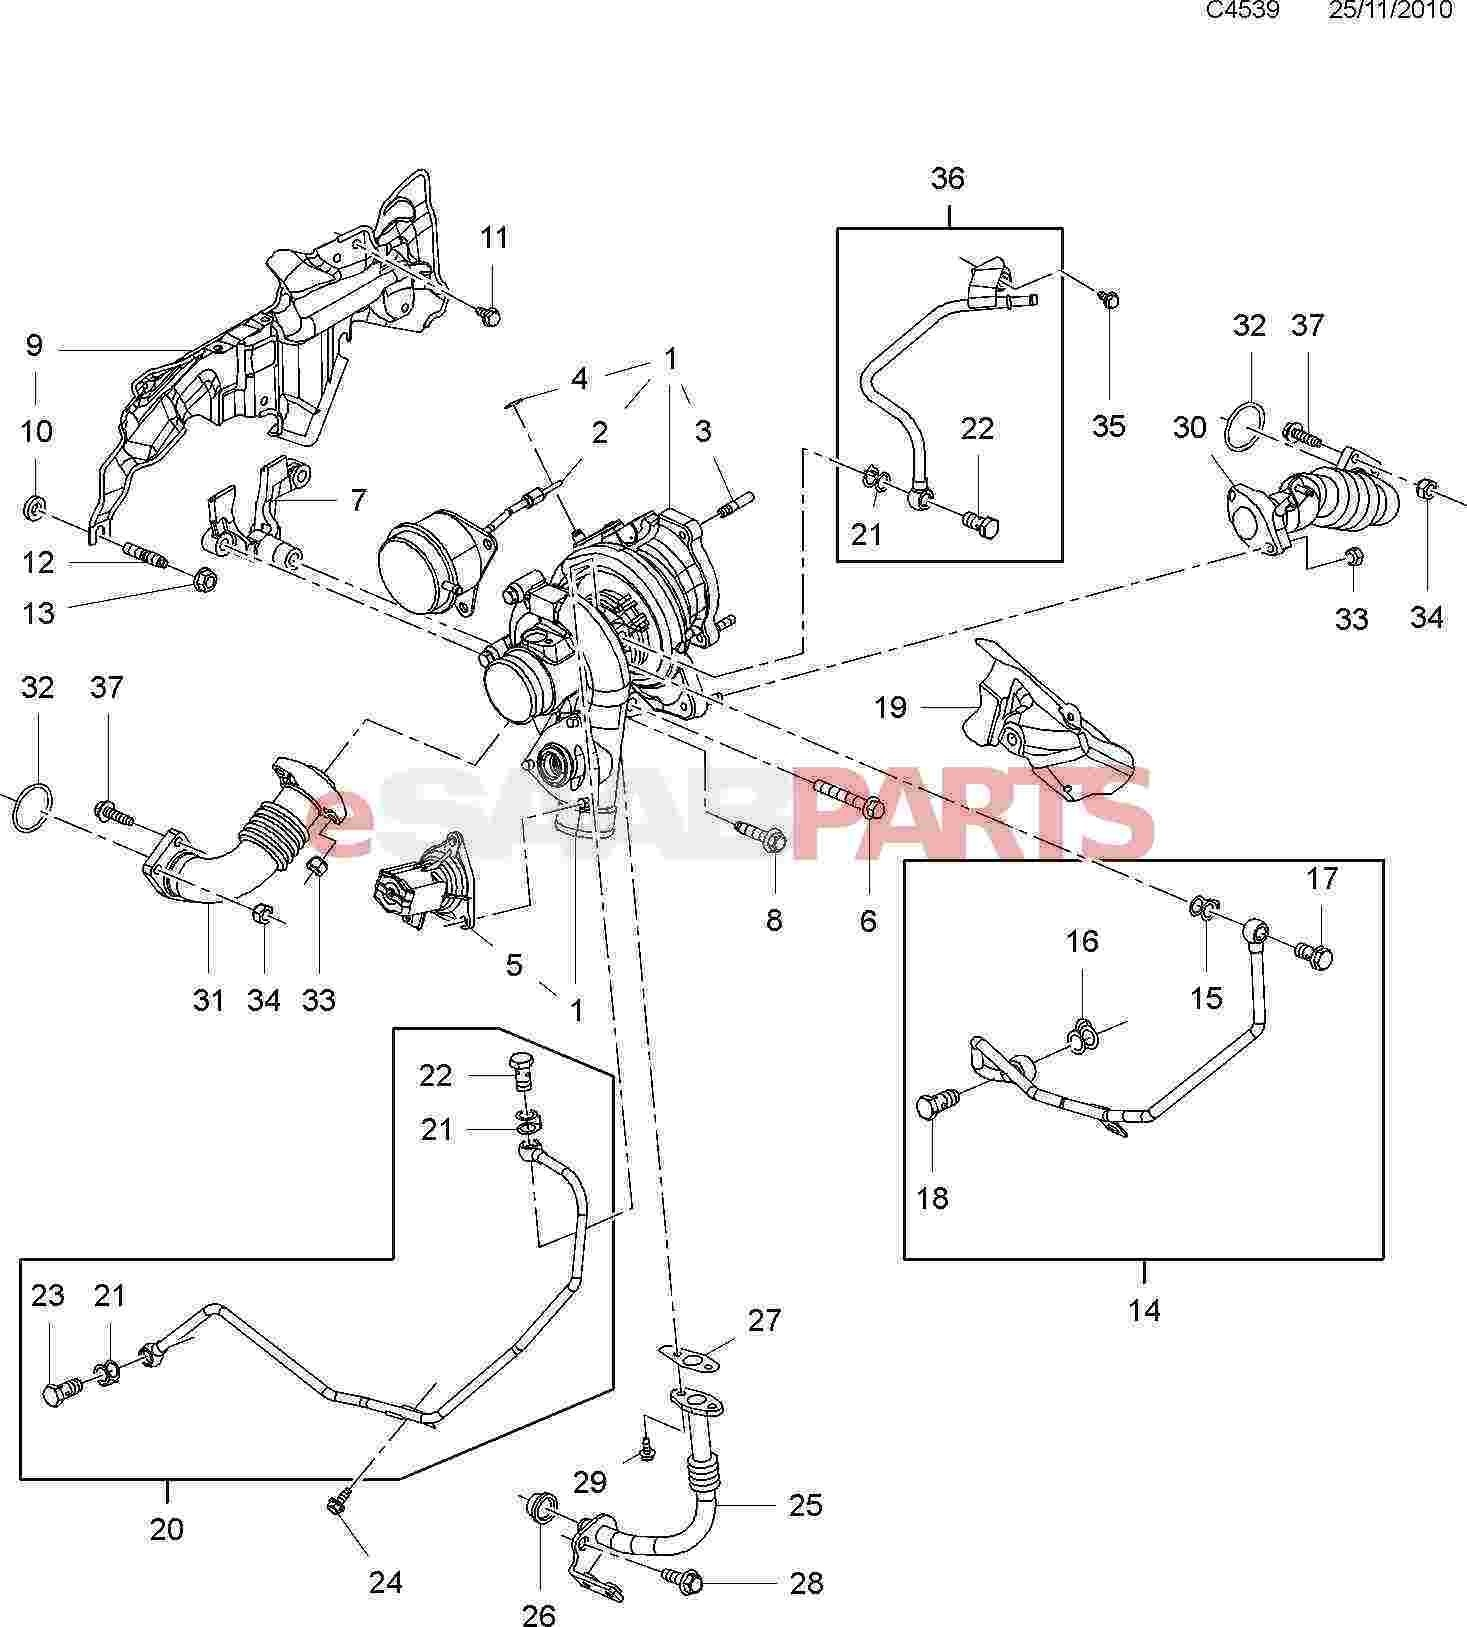 Mcdonnell douglas f 18 hor also RepairGuideContent in addition P 0900c15280067210 further 2004 Pontiac Grand Prix Stereo Wiring Diagram additionally 2003 Saab 9 3 Knock Sensor Location. on saab 9 3 engine schematics